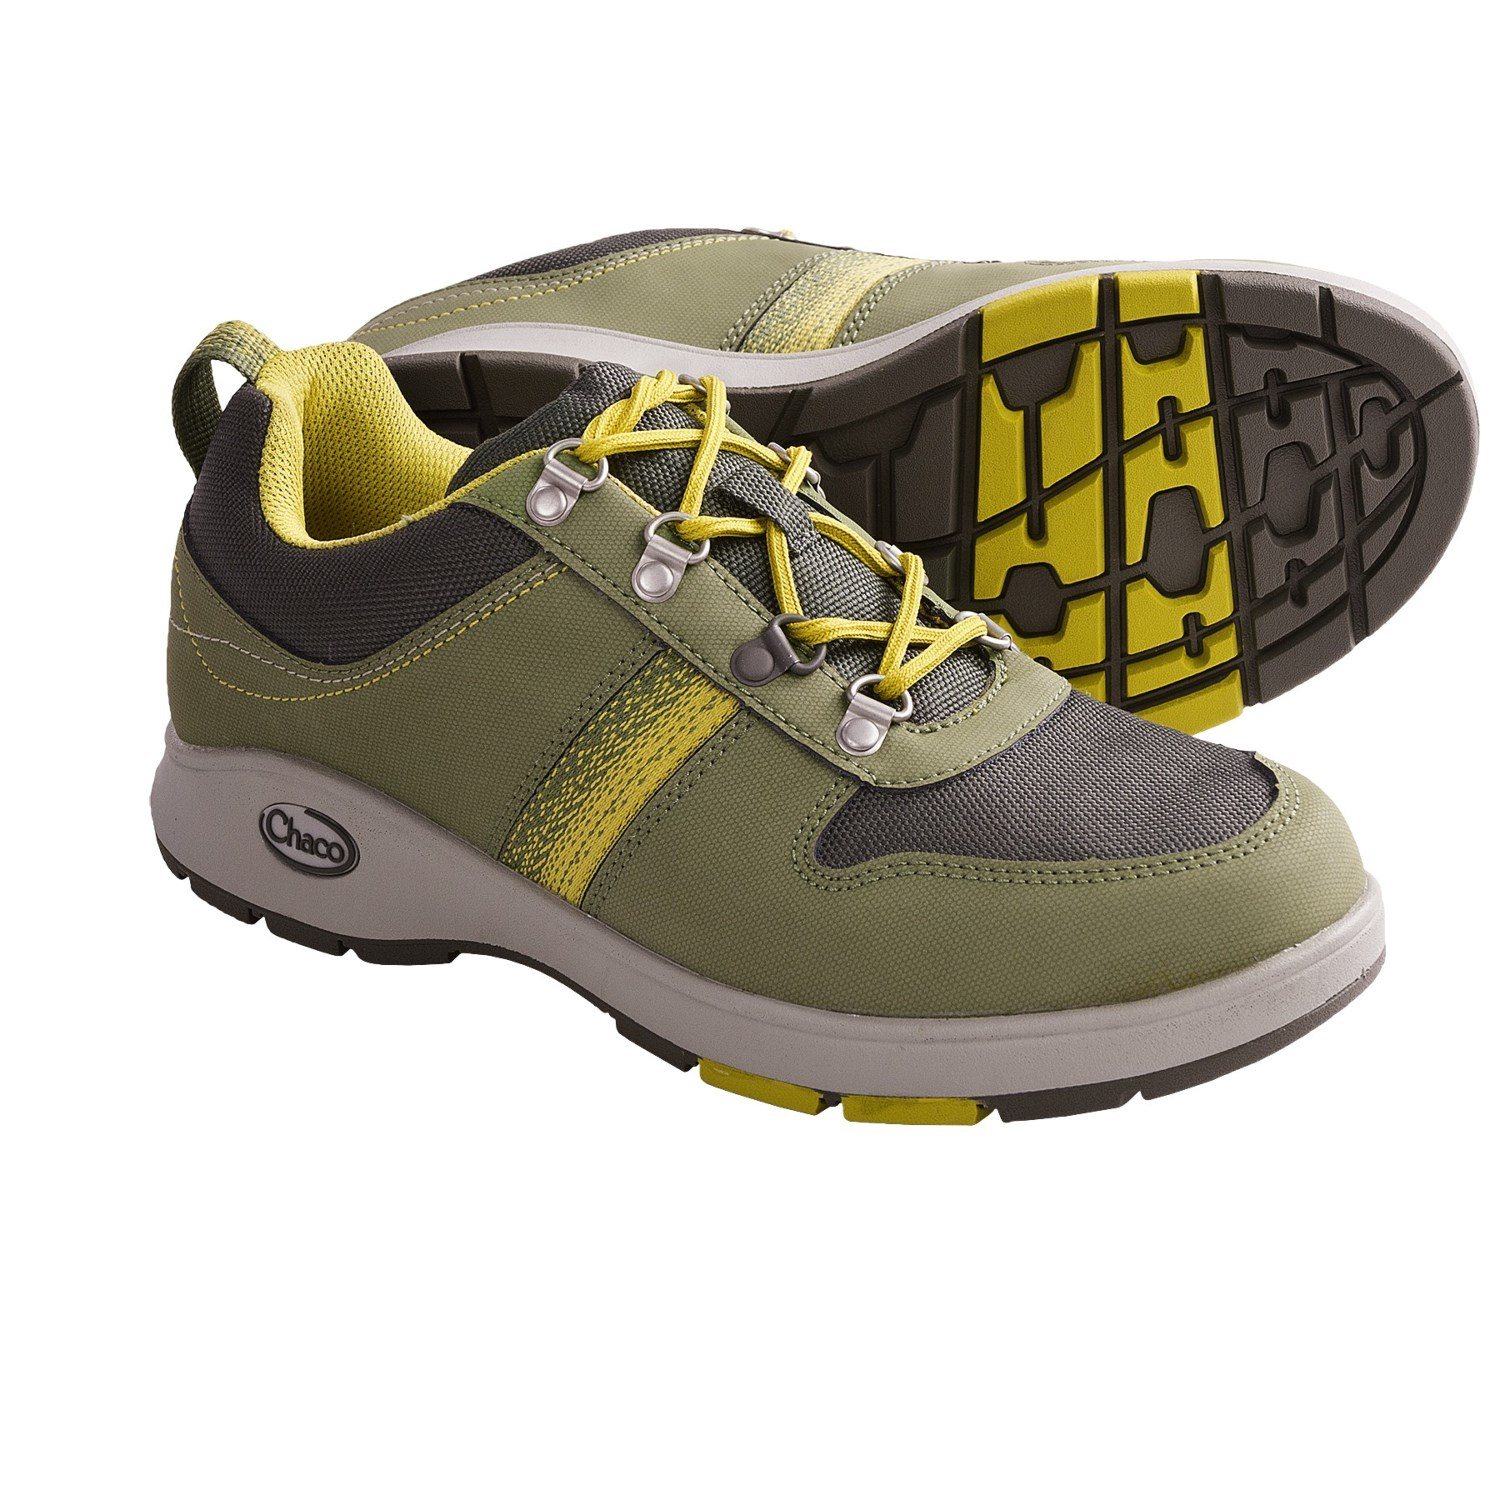 Chaco Verona Shoes (For Women) in Olivine